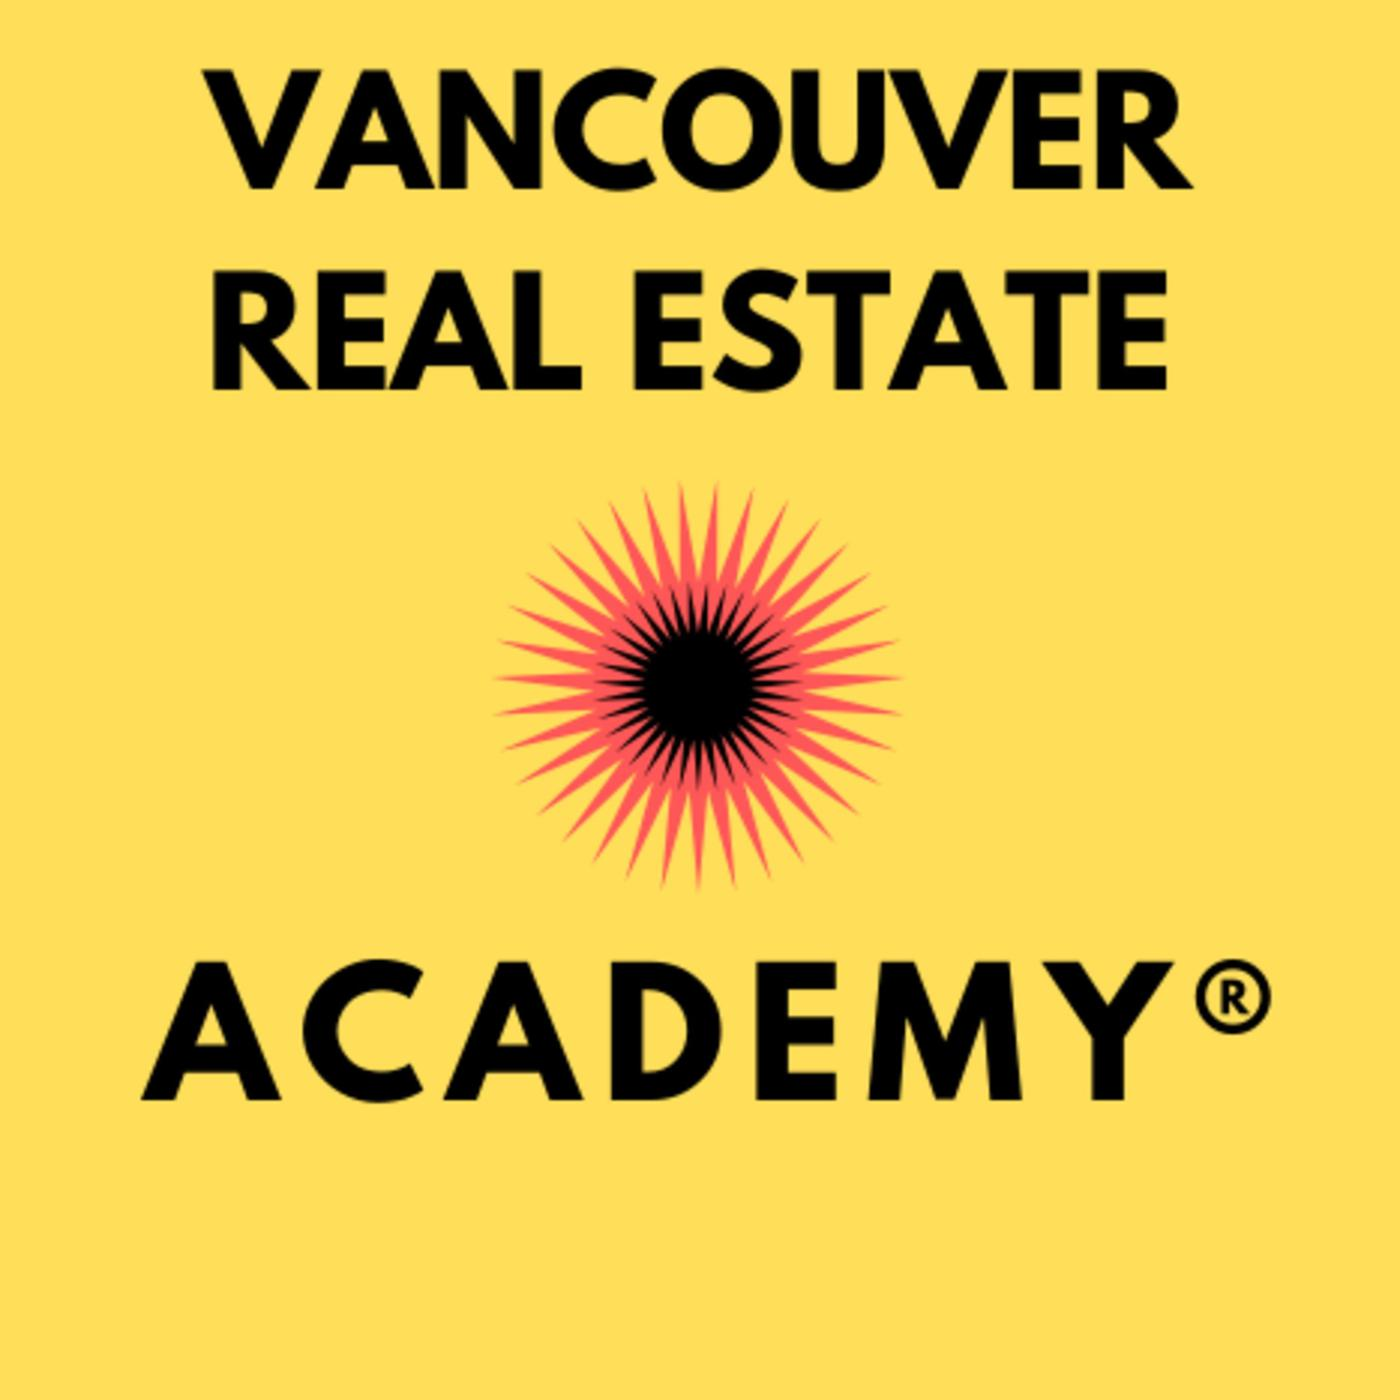 First Time Home Buyer 2020.Vancouver Real Estate Academy Canada Podcast Robert